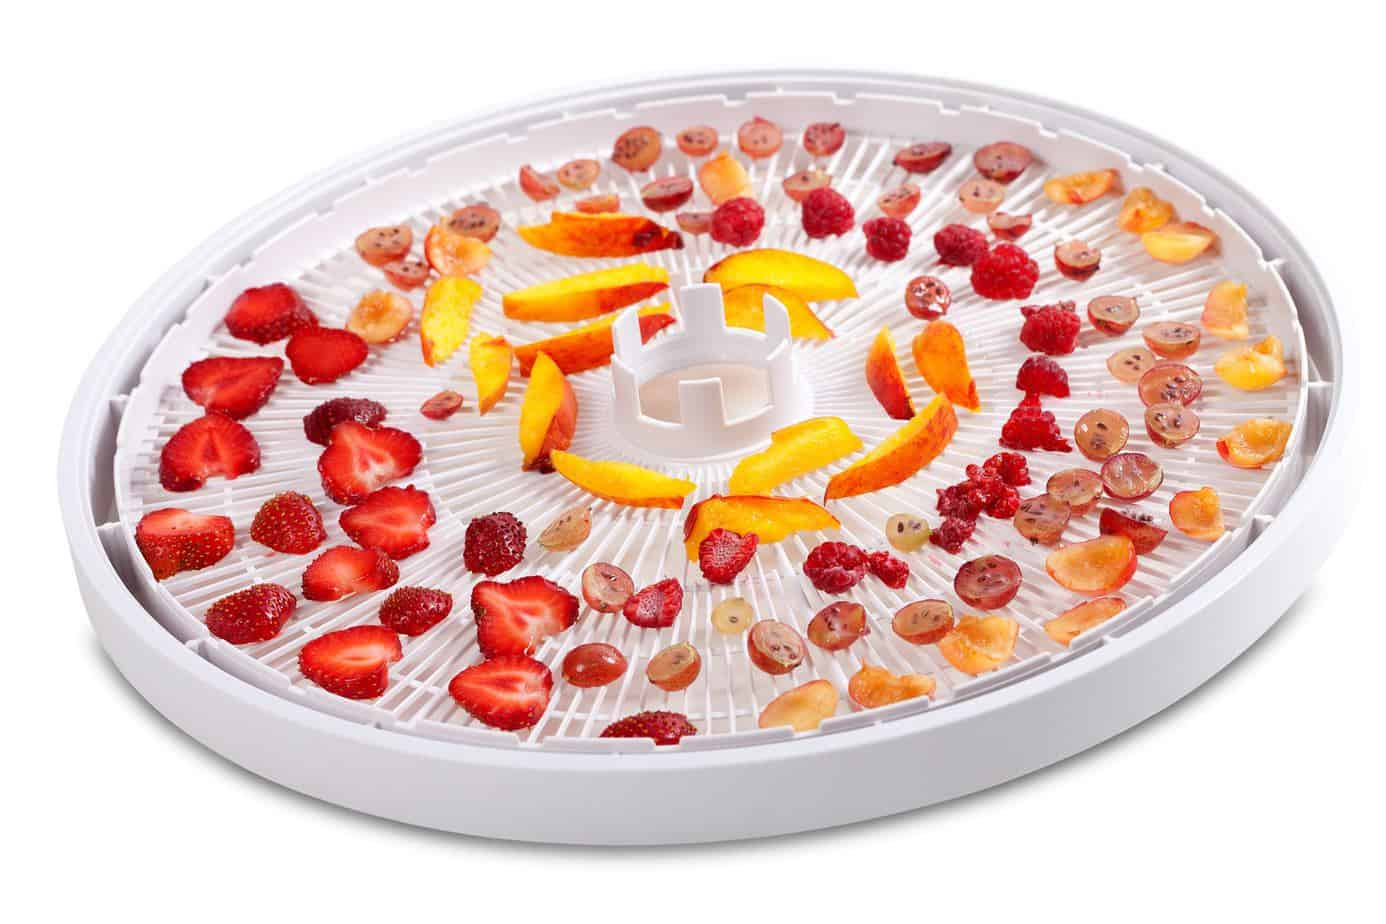 Slices Of Fruits And Berries On Dehydrator Tray